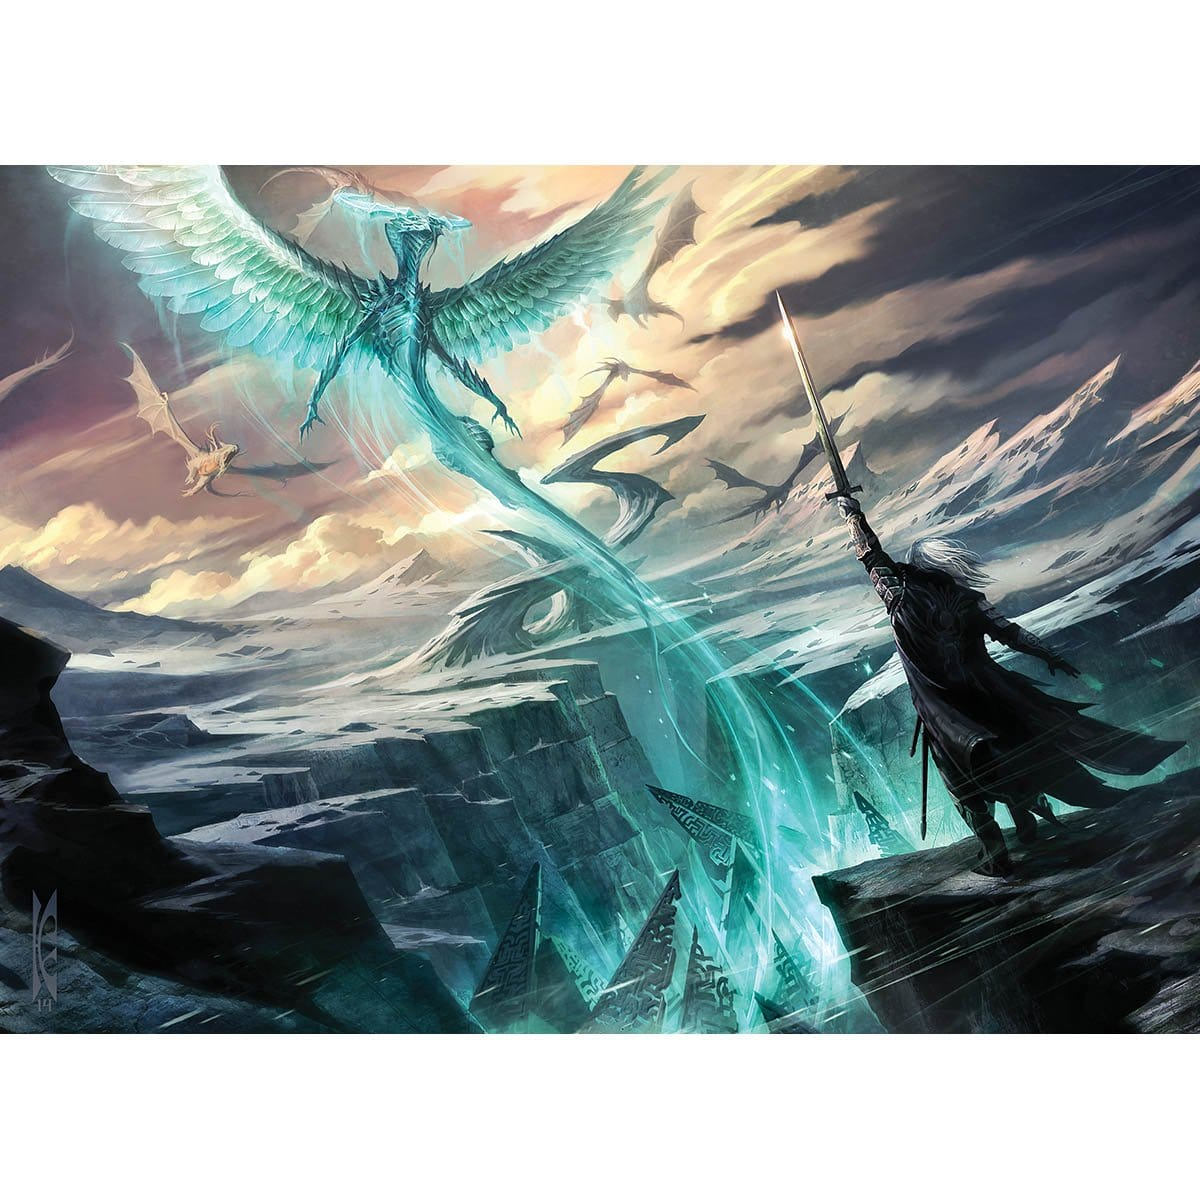 Haven of the Spirit Dragon Print - Print - Original Magic Art - Accessories for Magic the Gathering and other card games